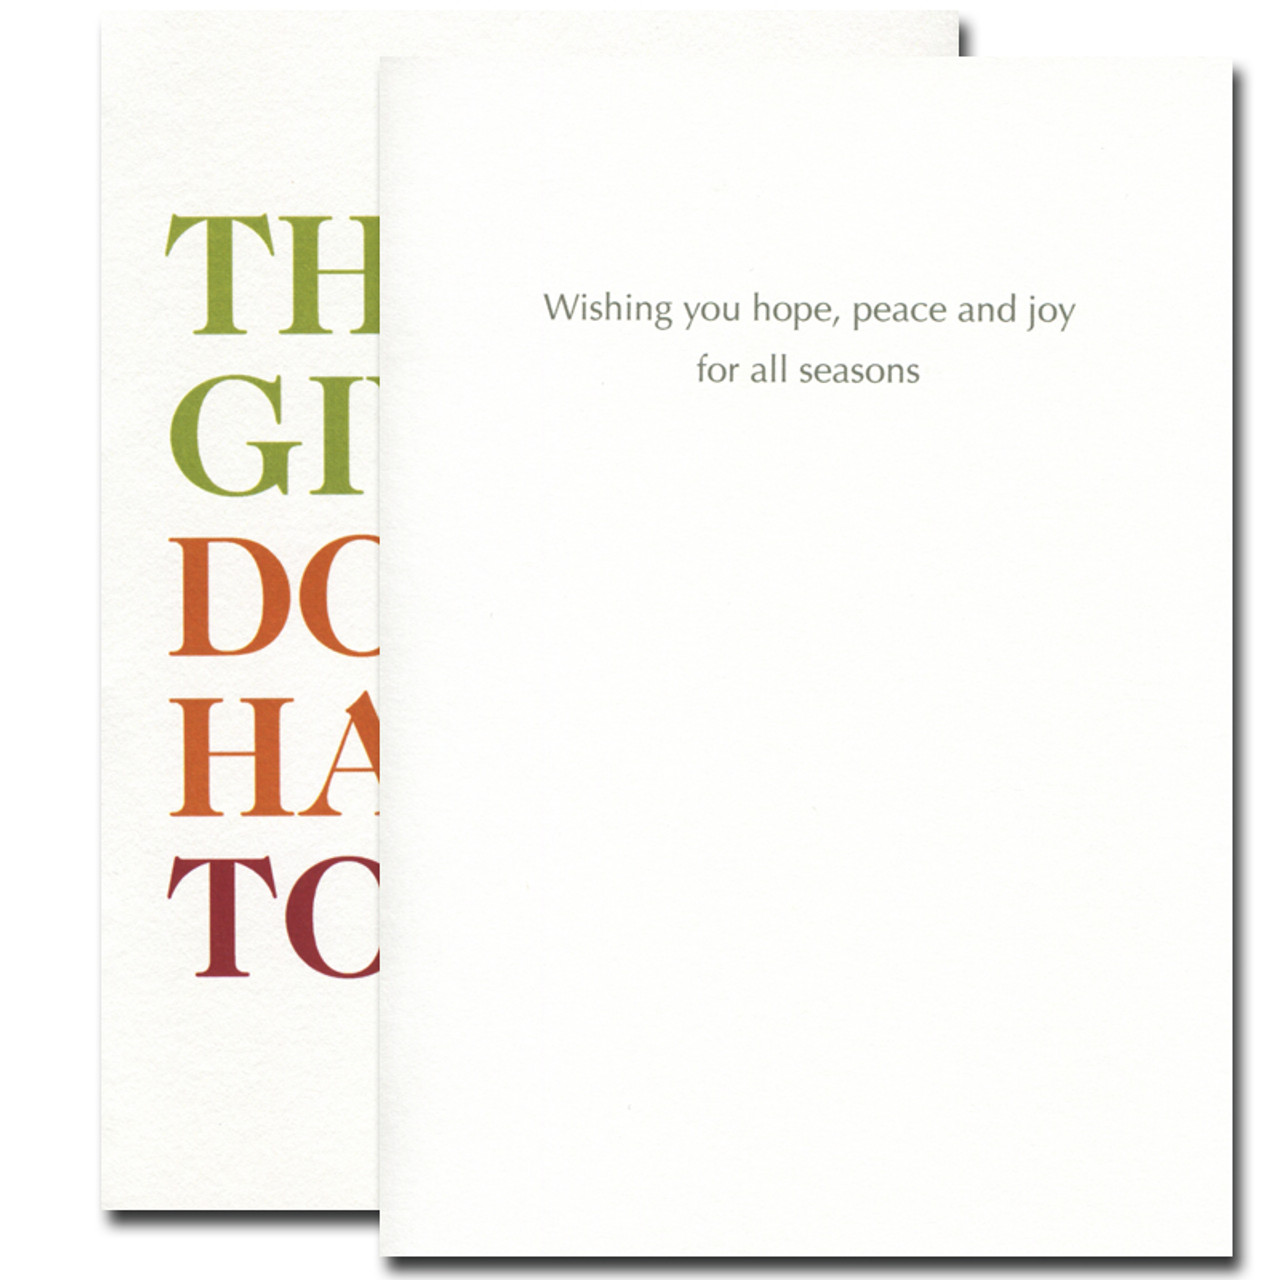 All Year Long Thanksgiving Card inside reads: Wishing you hope, peace and joy for all seasons